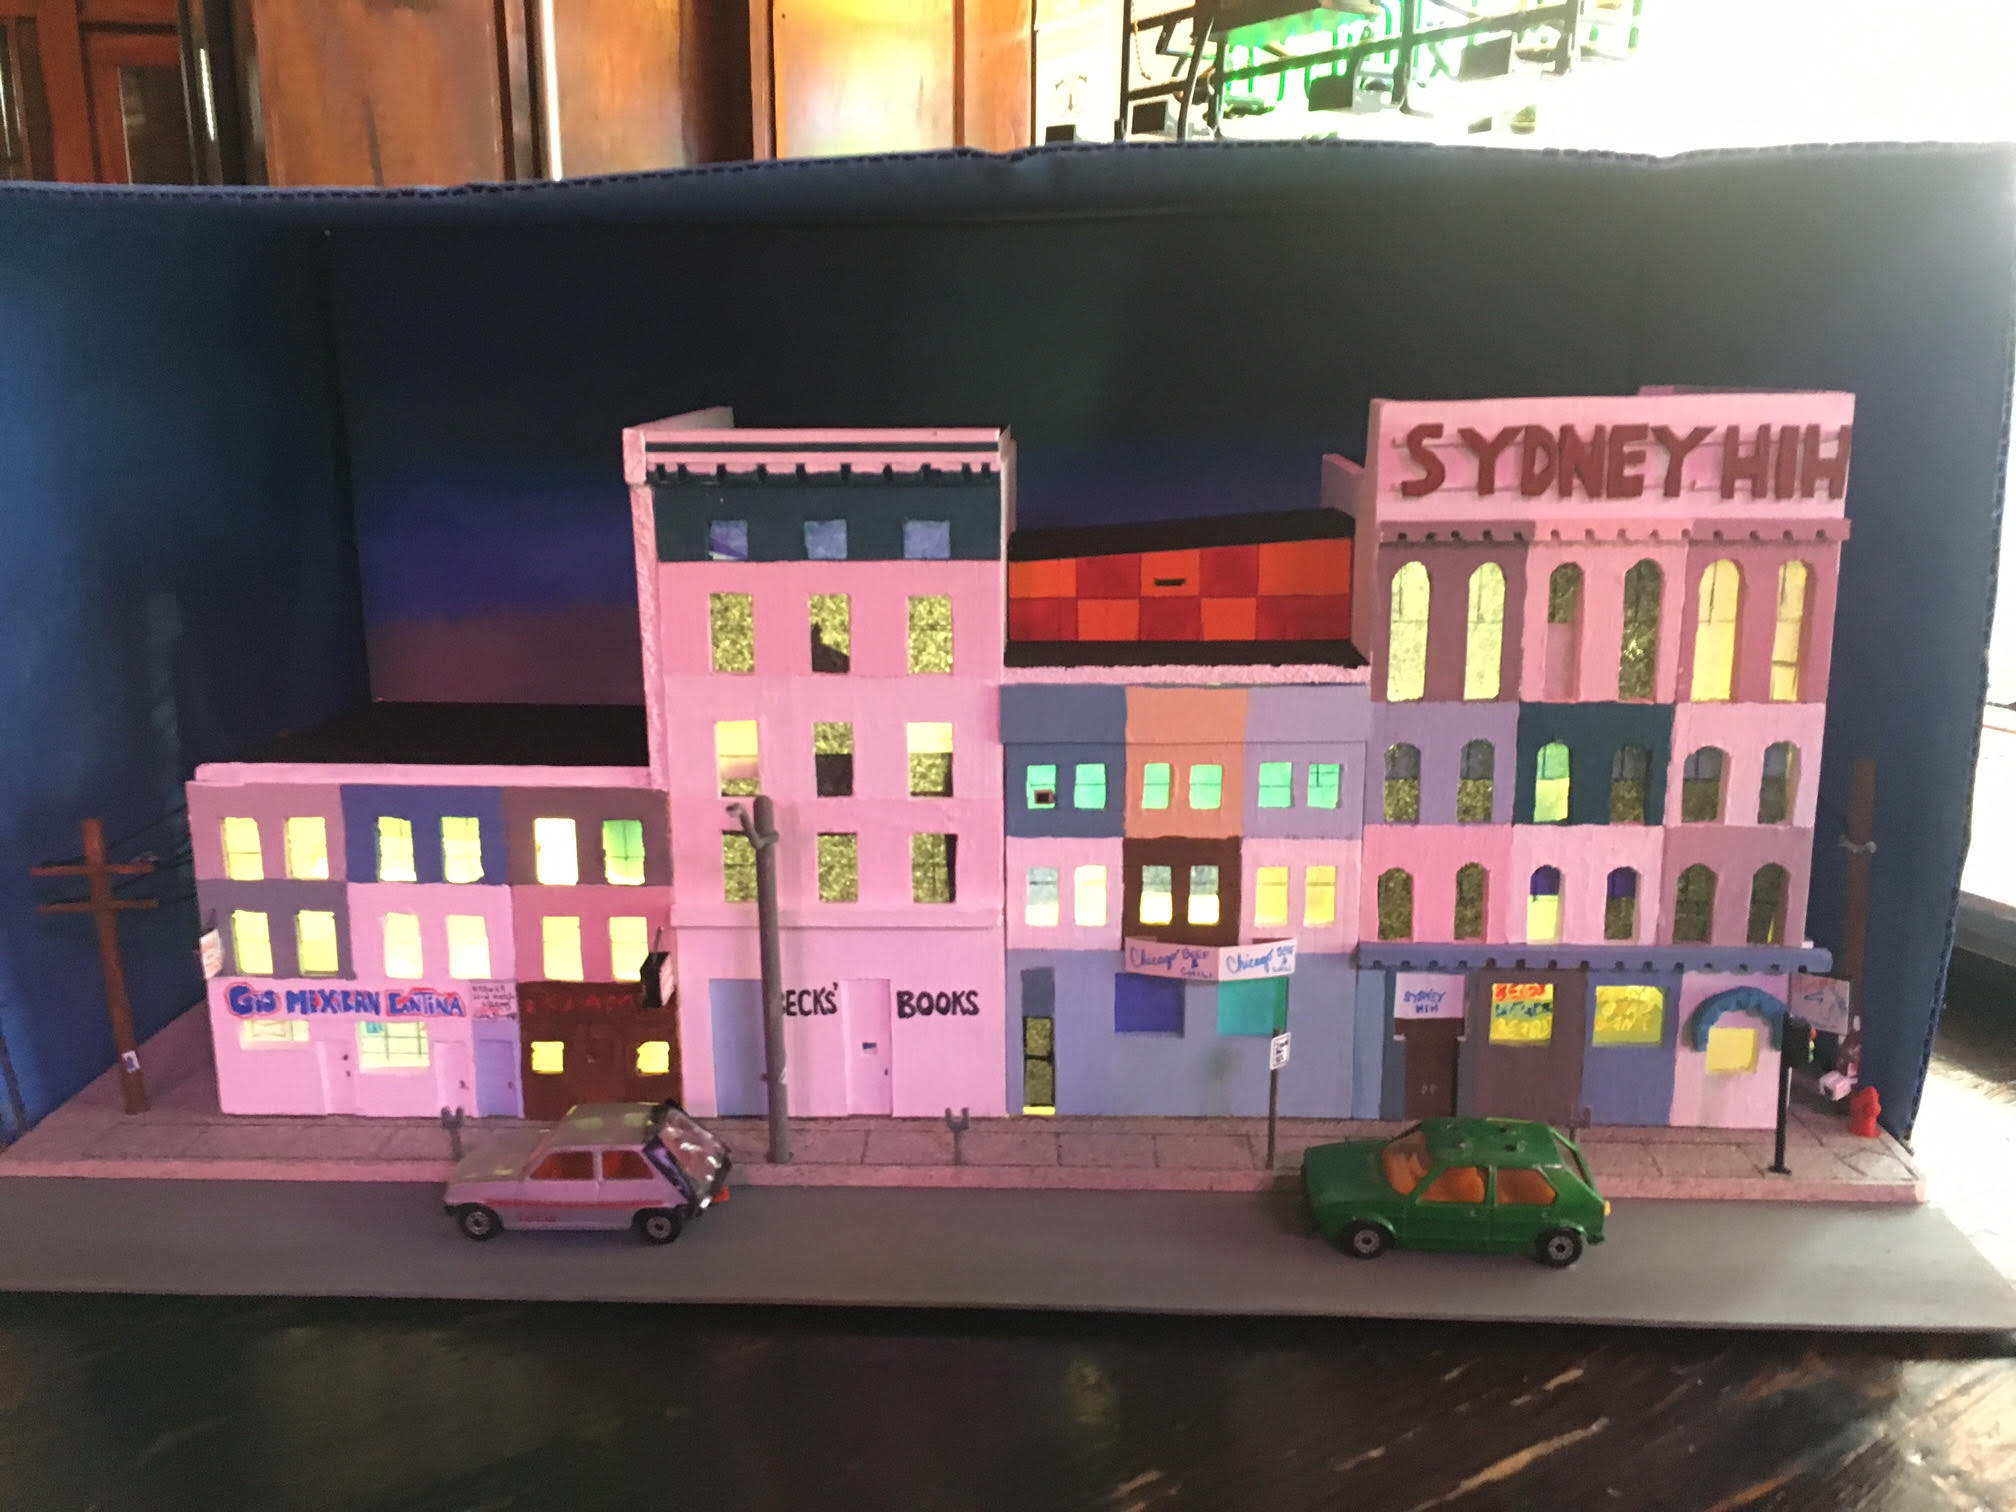 Sydney Hih diorama by Chris Tishler.